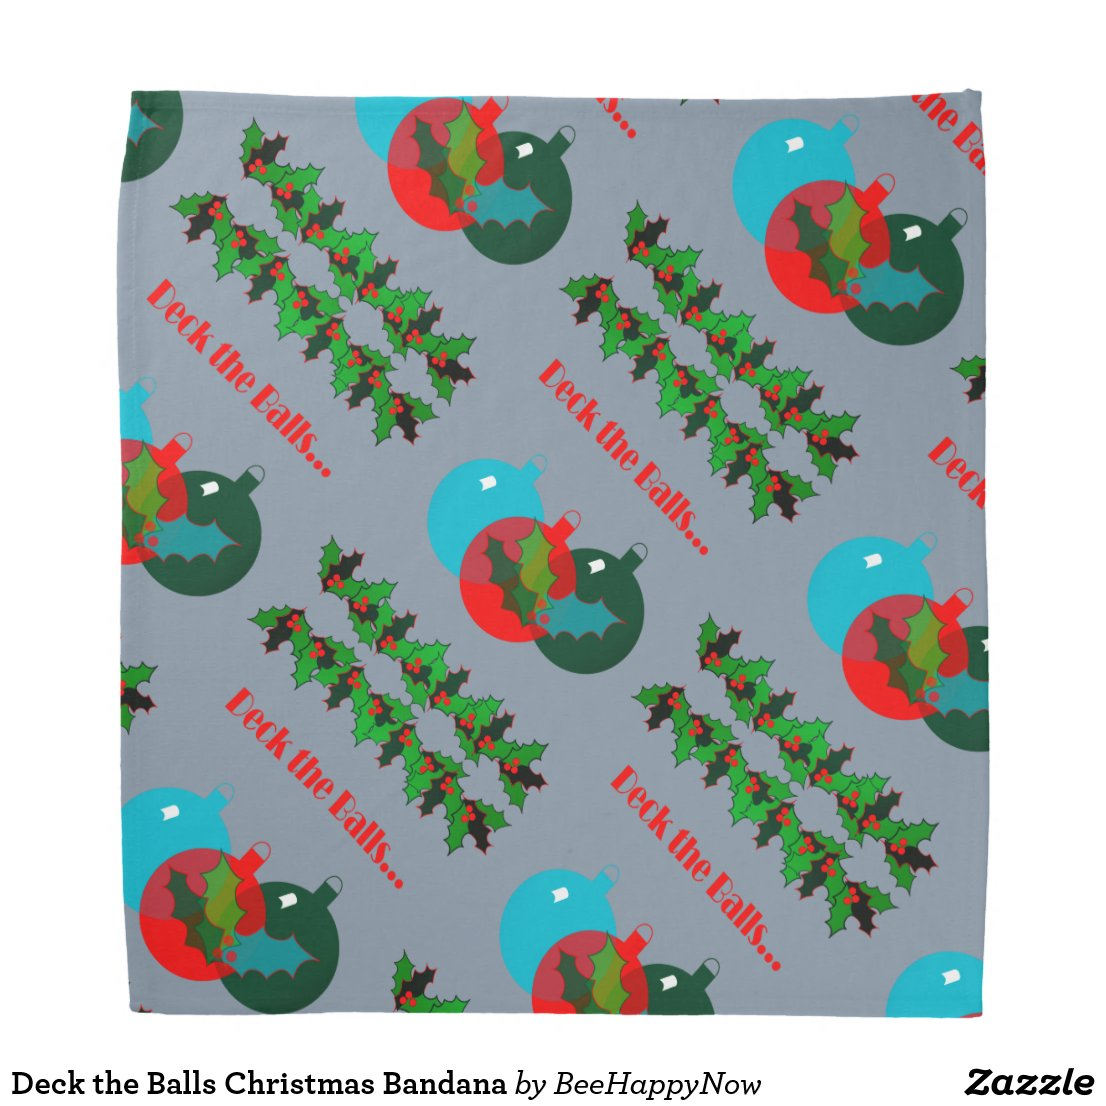 Deck the Balls Christmas Bandana